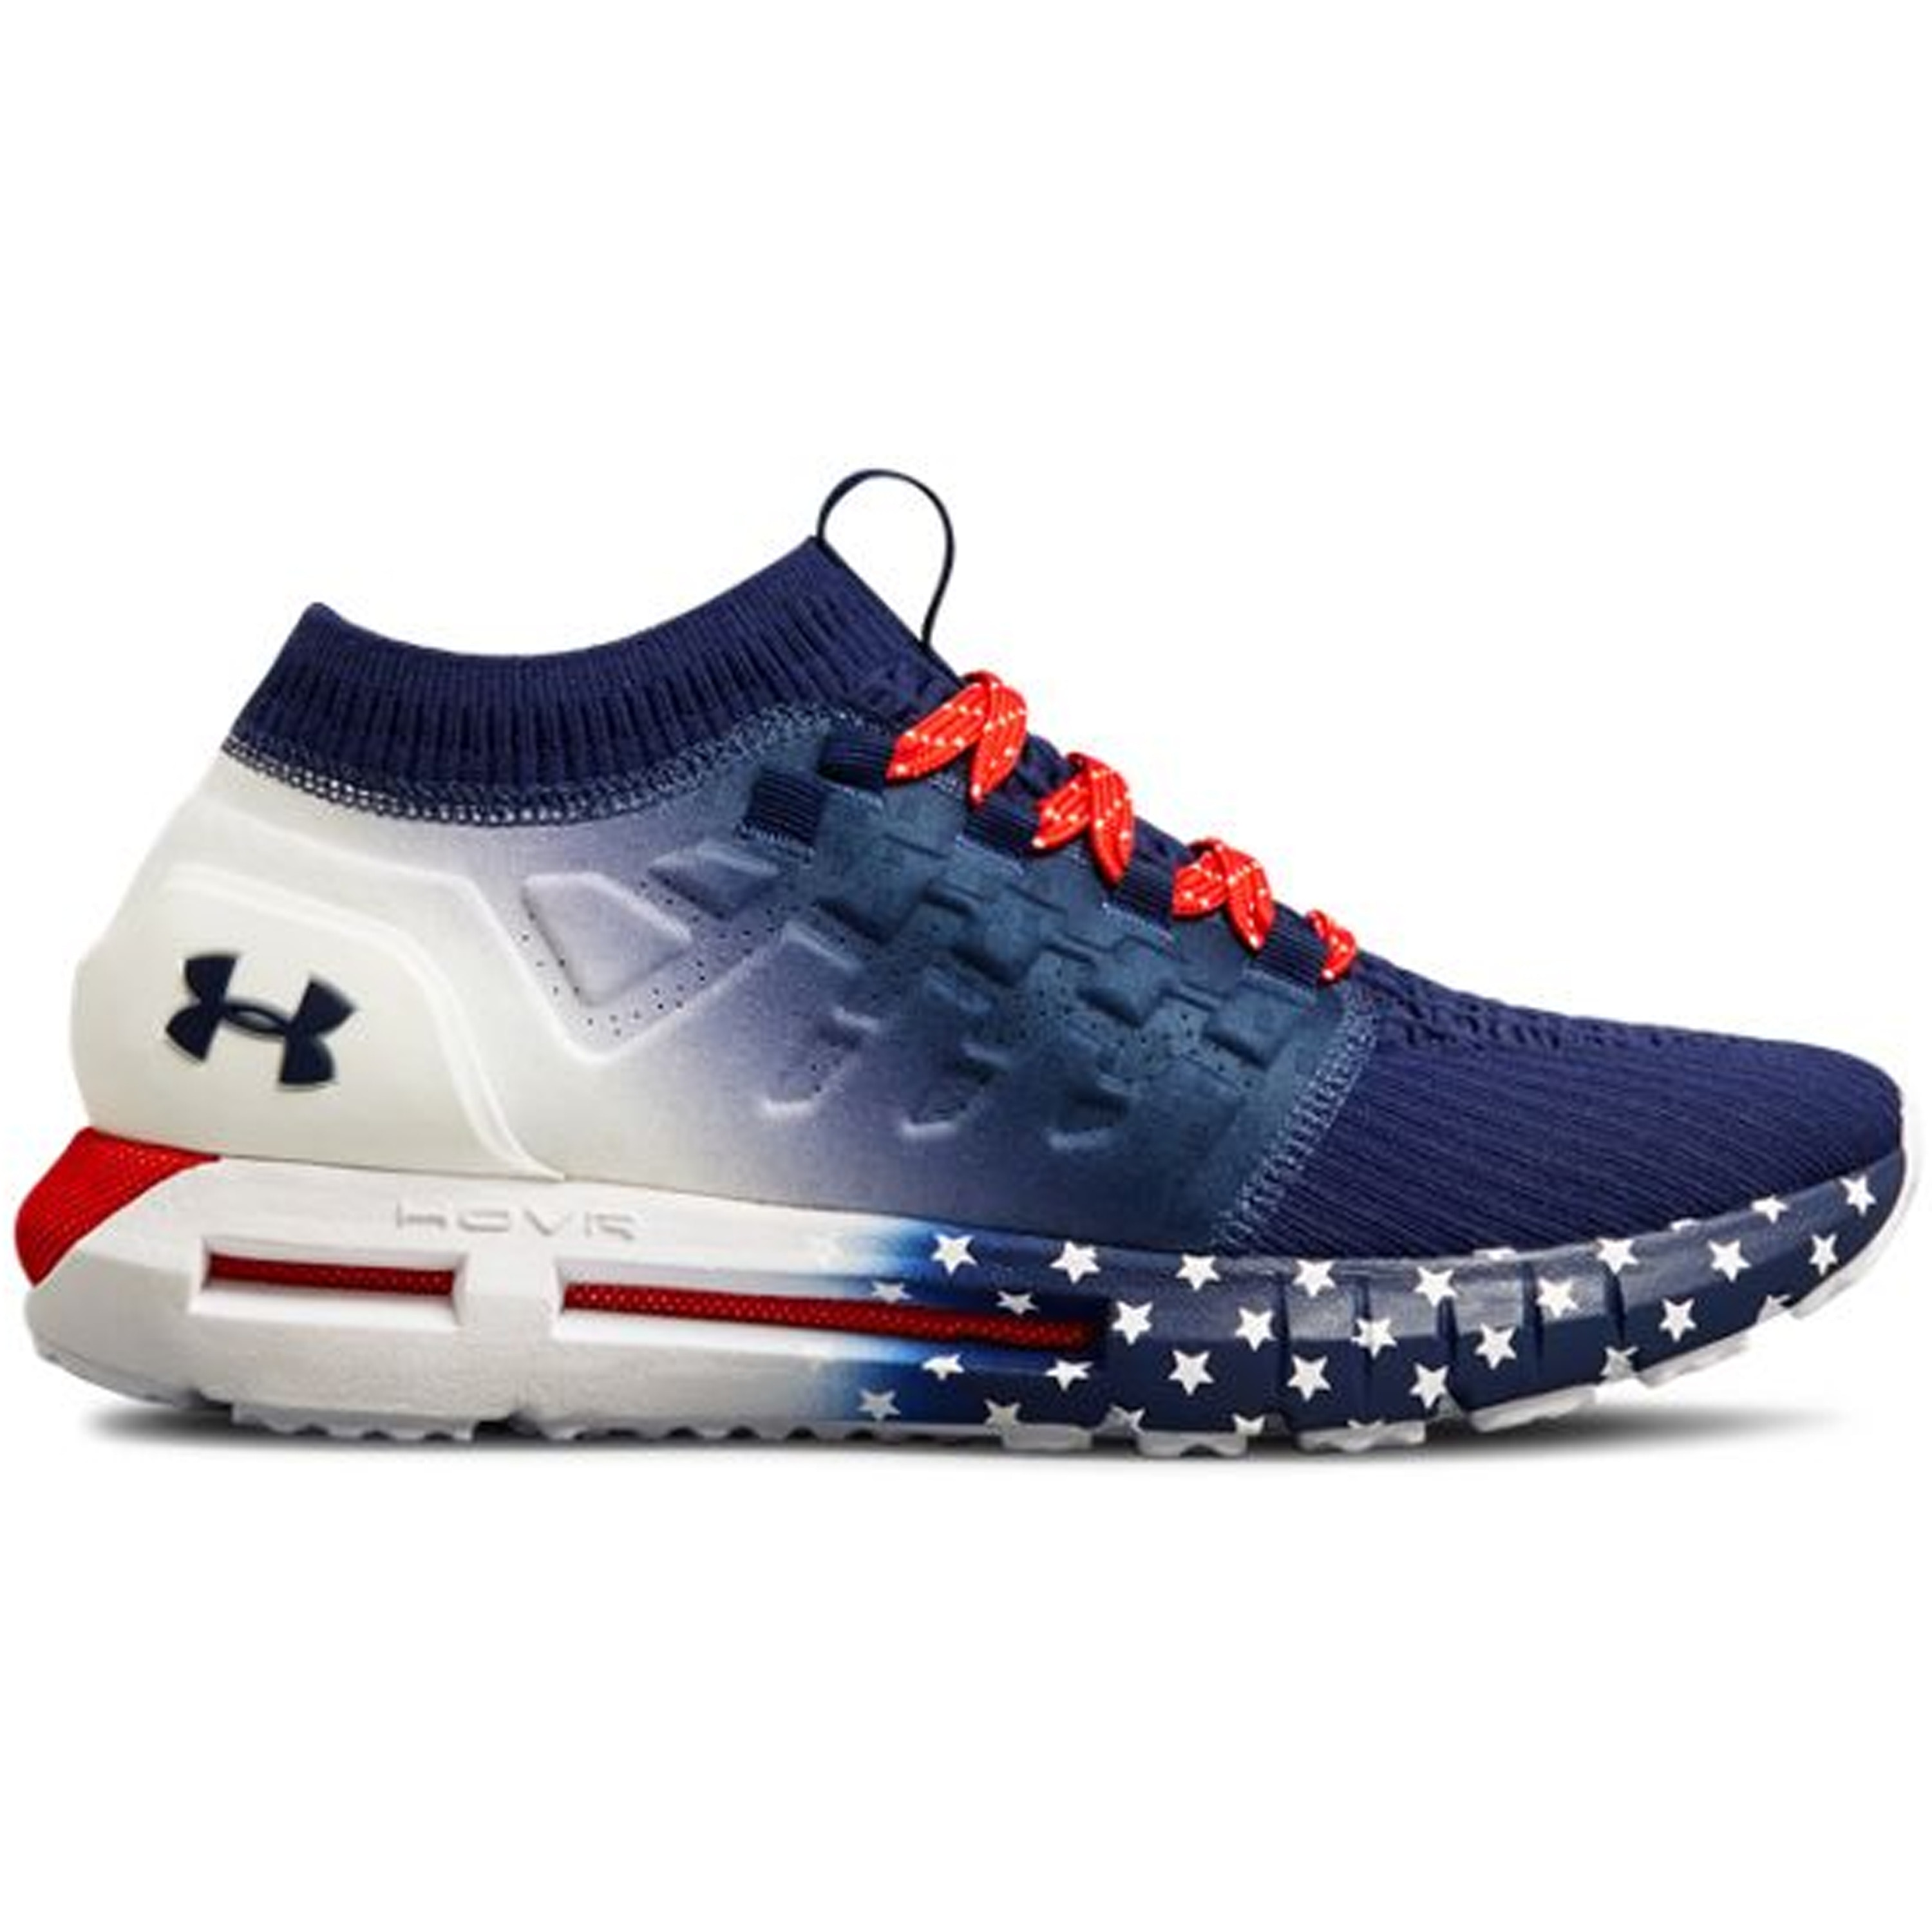 Under Armour Hovr Phantom MLB All-Star (2018) (3020913-102)